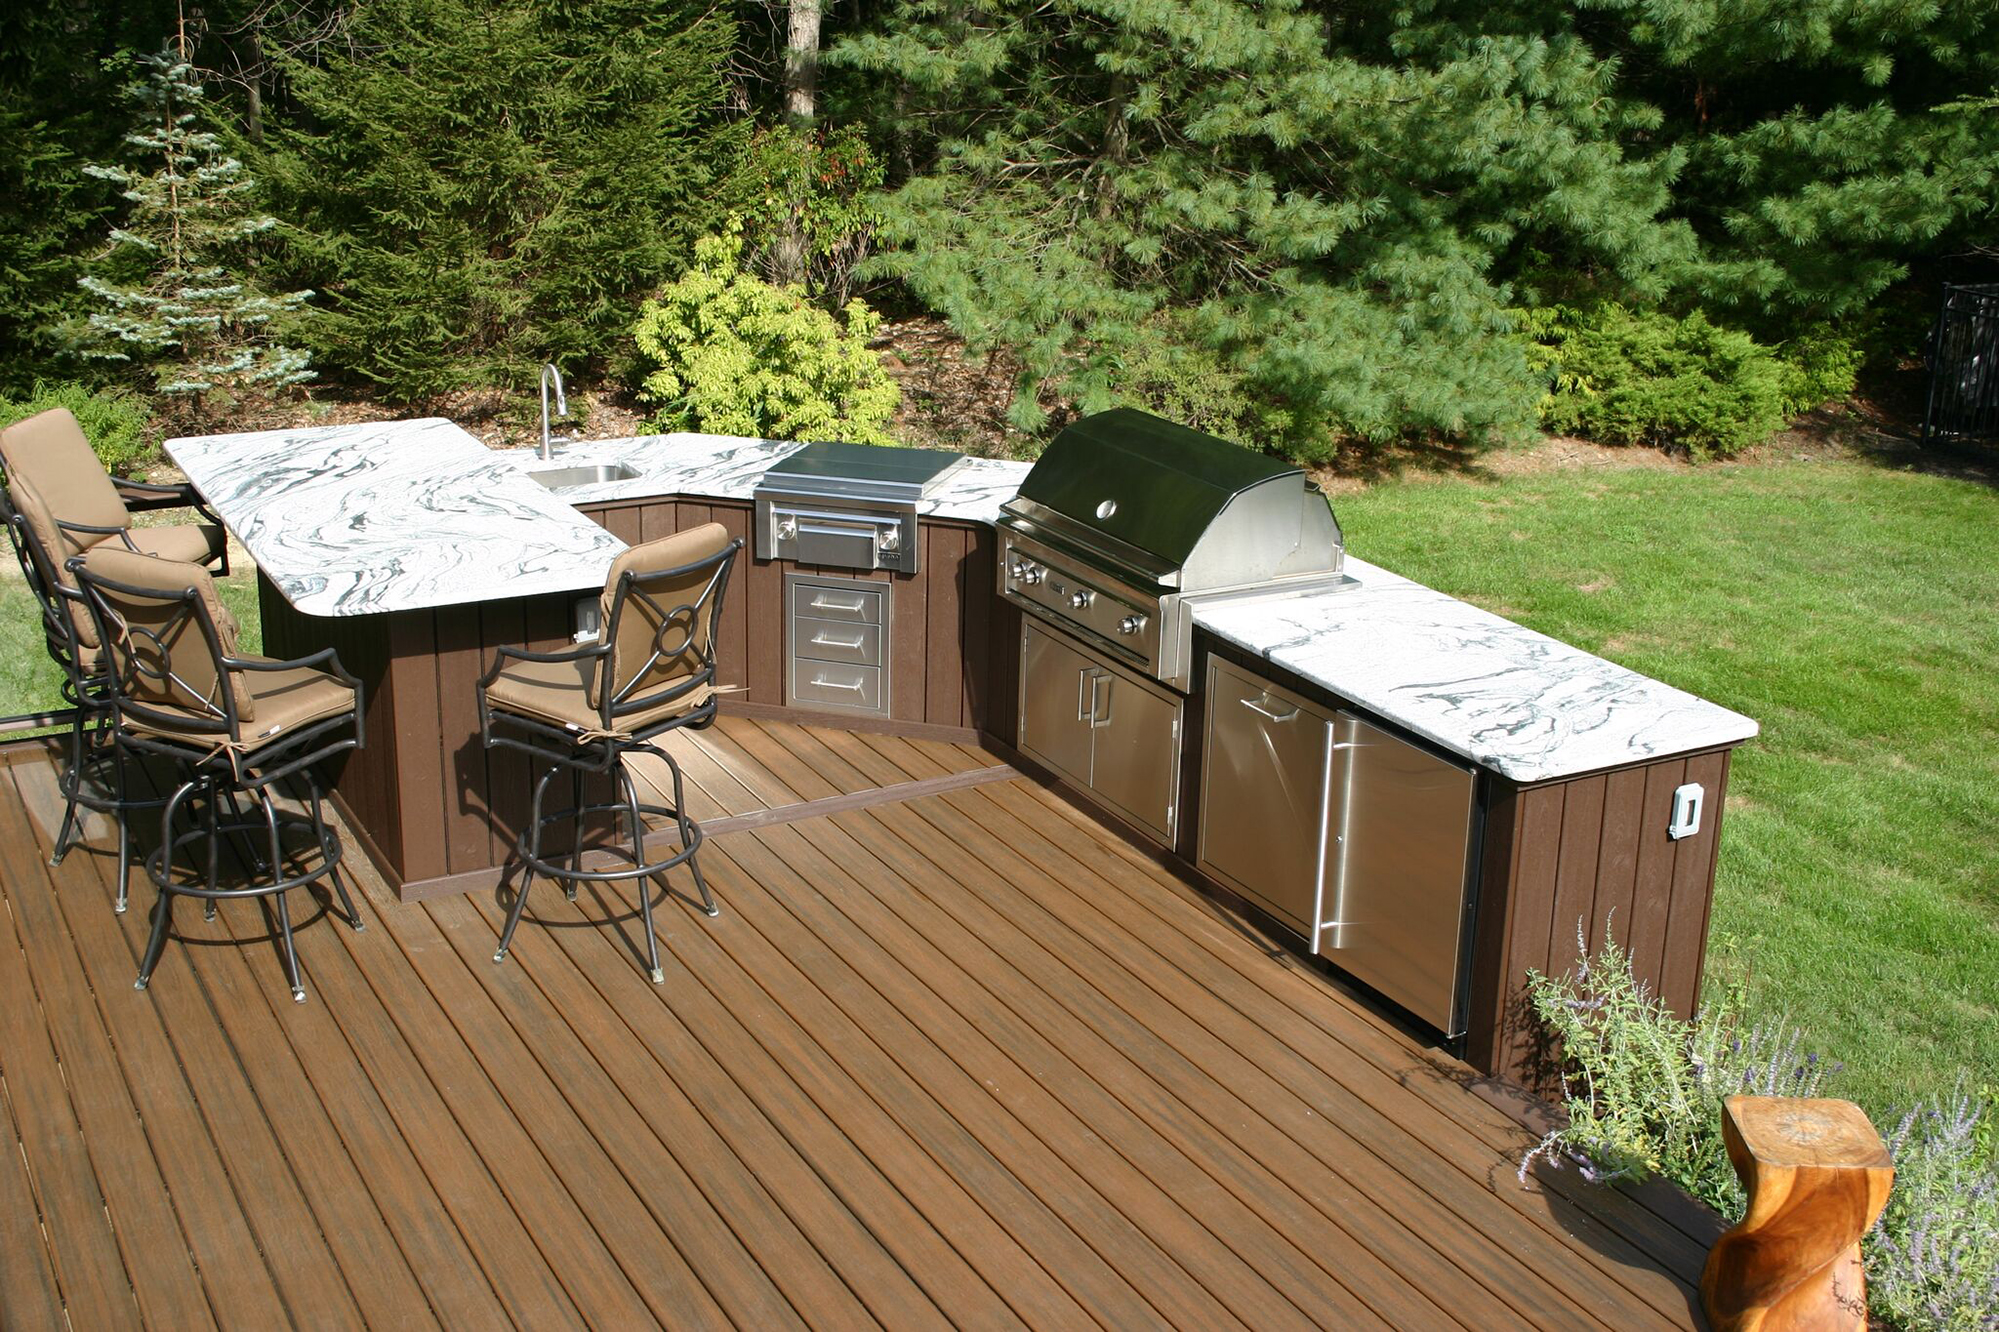 Designing Outdoor Kitchens | Professional Deck Builder | Outdoor Kitchens,  Outdoor Rooms, Kitchen